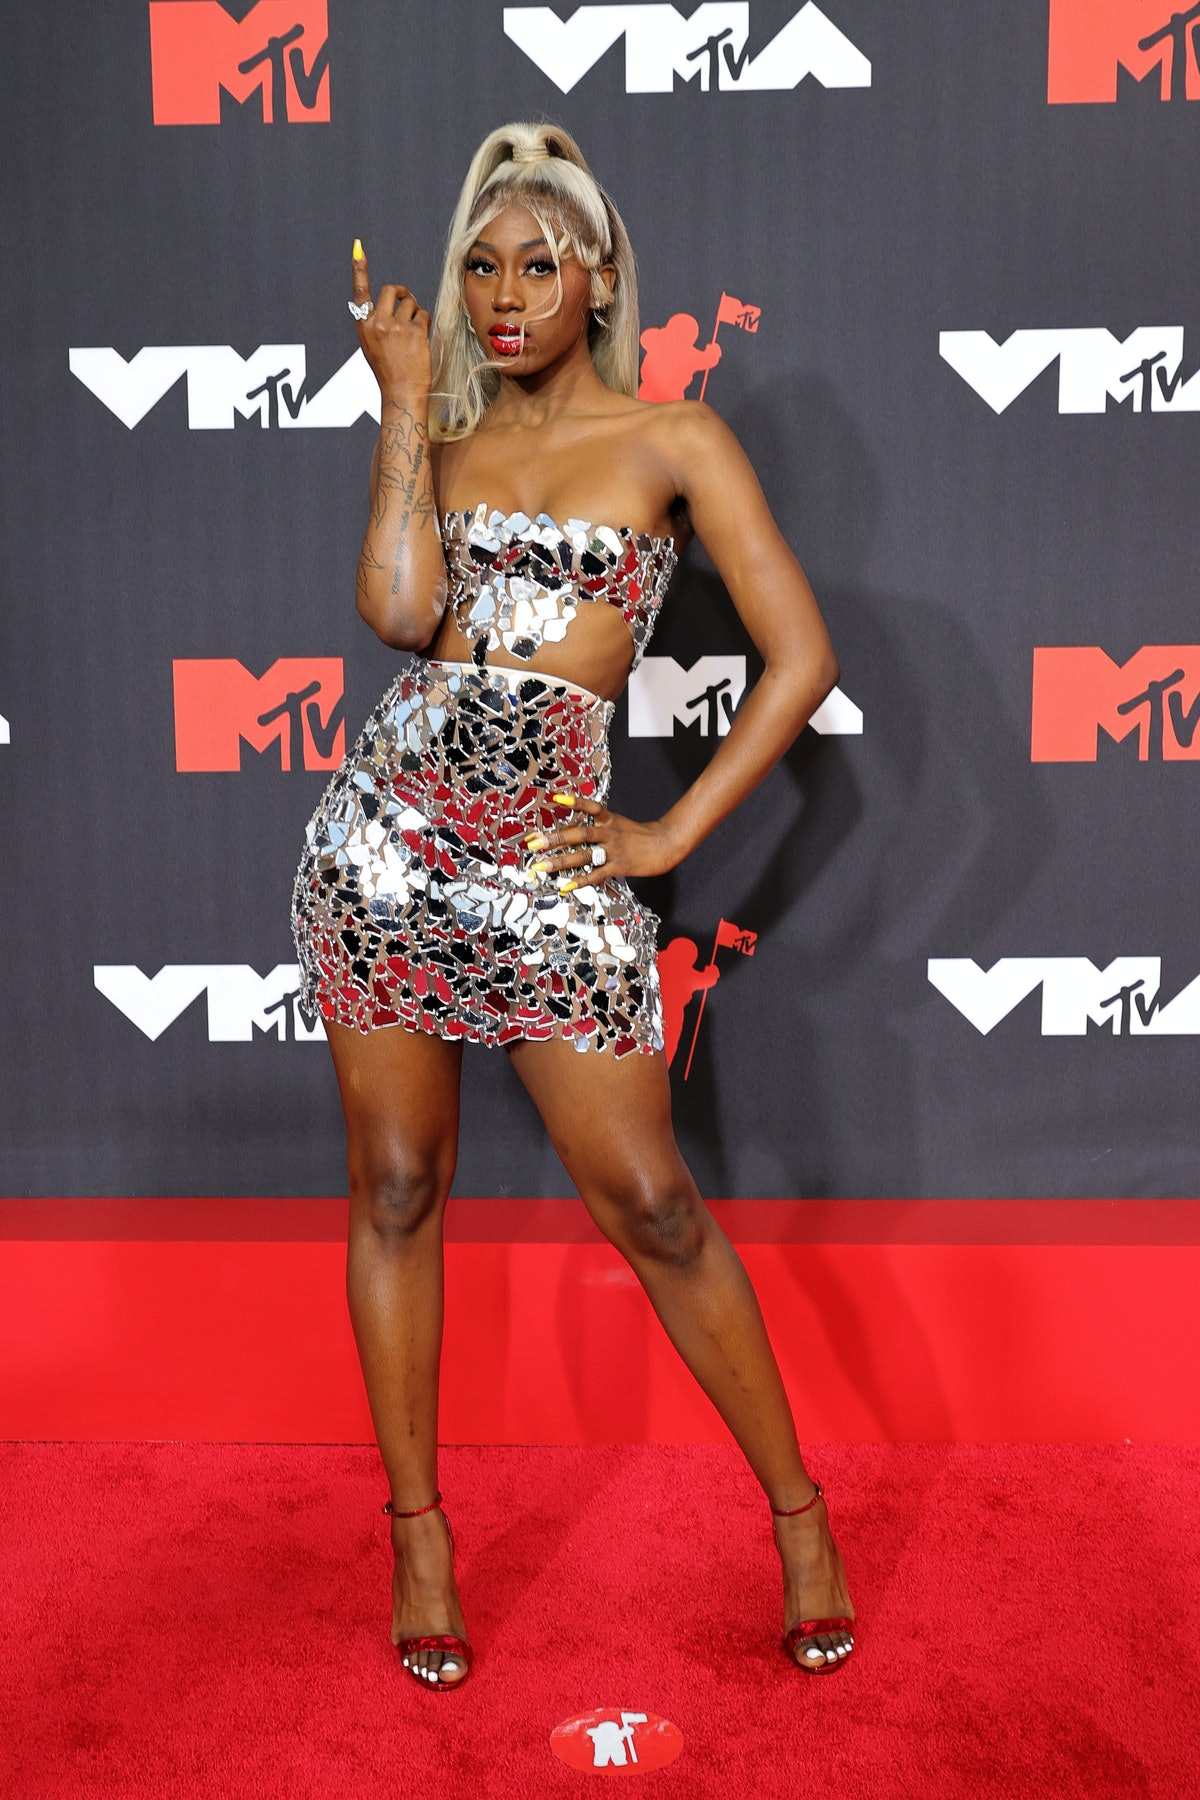 Flo Milli attends the 2021 MTV Video Music Awards at Barclays Center on September 12, 2021 in the Br...